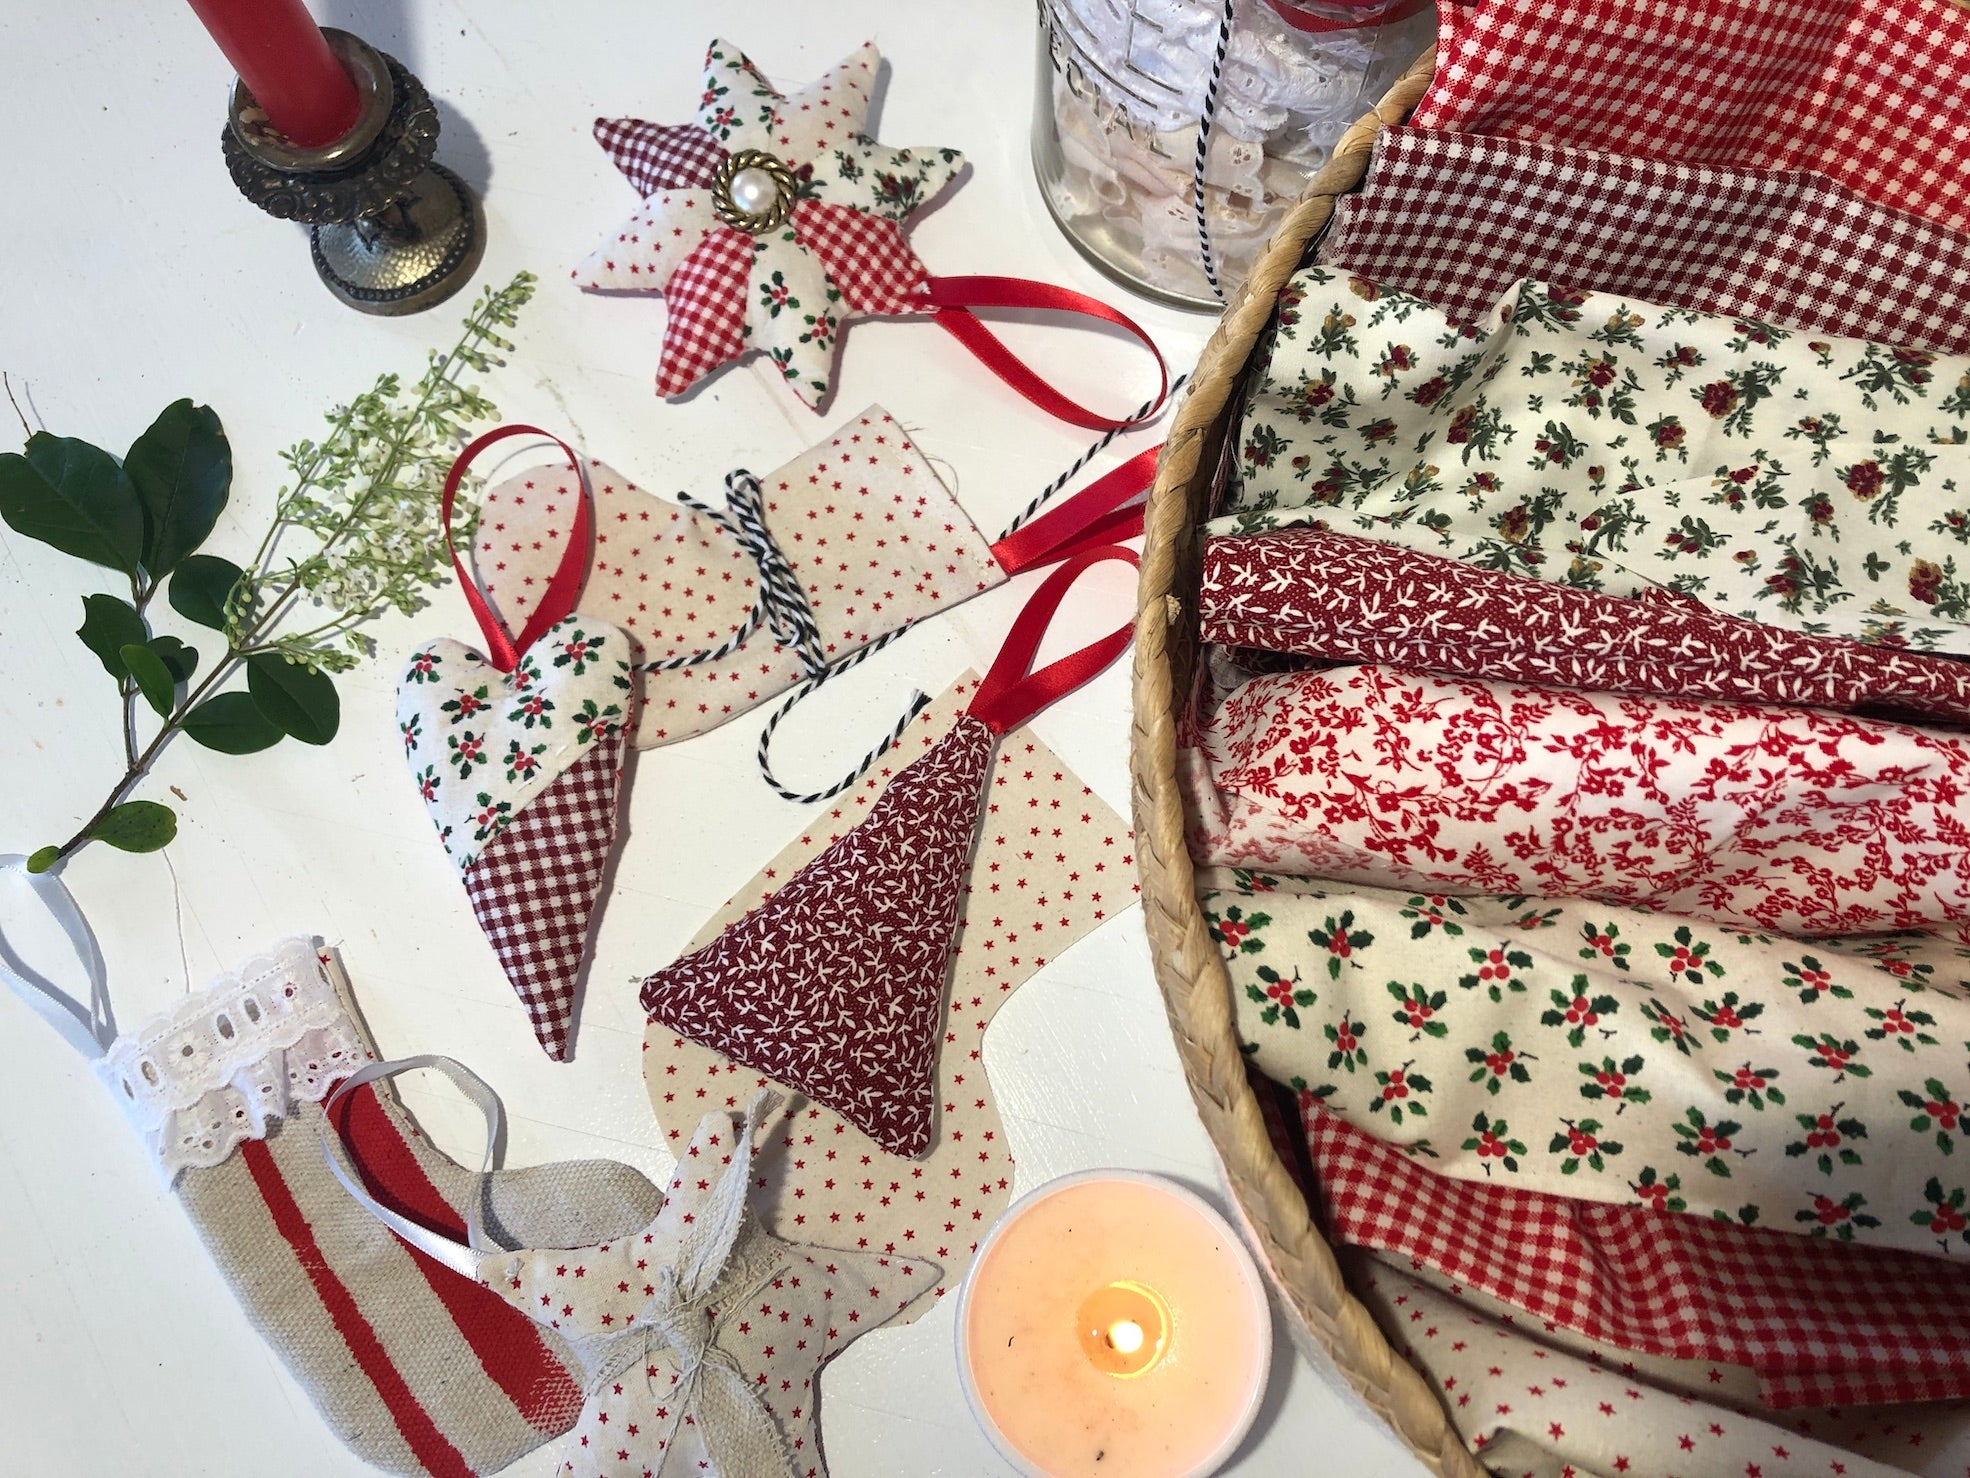 Budget Decorations to Sew for Christmas _materials and tools